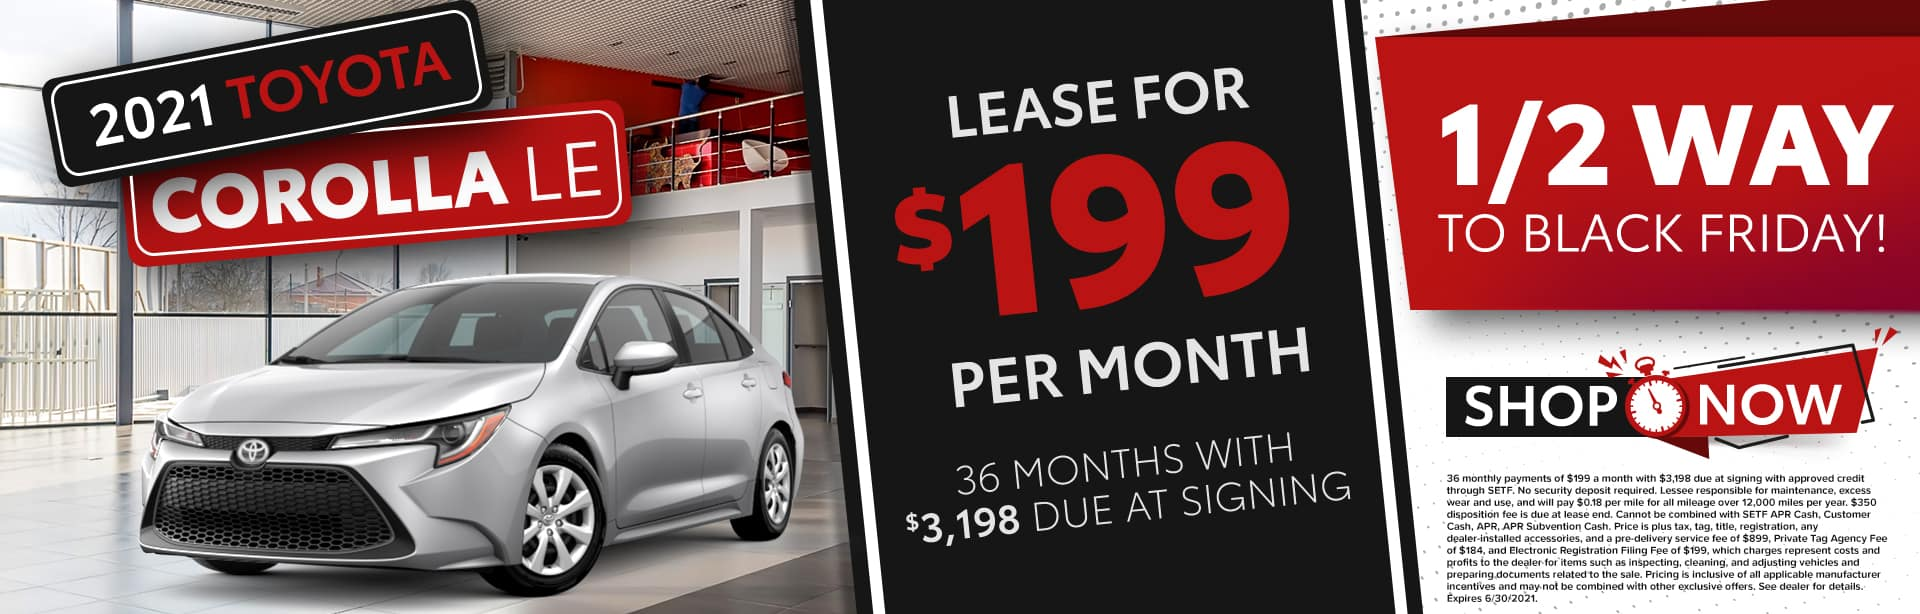 1/2 Way To Black Friday   2021 Toyota Corolla LE   Lease For $199 Per Month For 36 Months With $3,198 Due At Signing